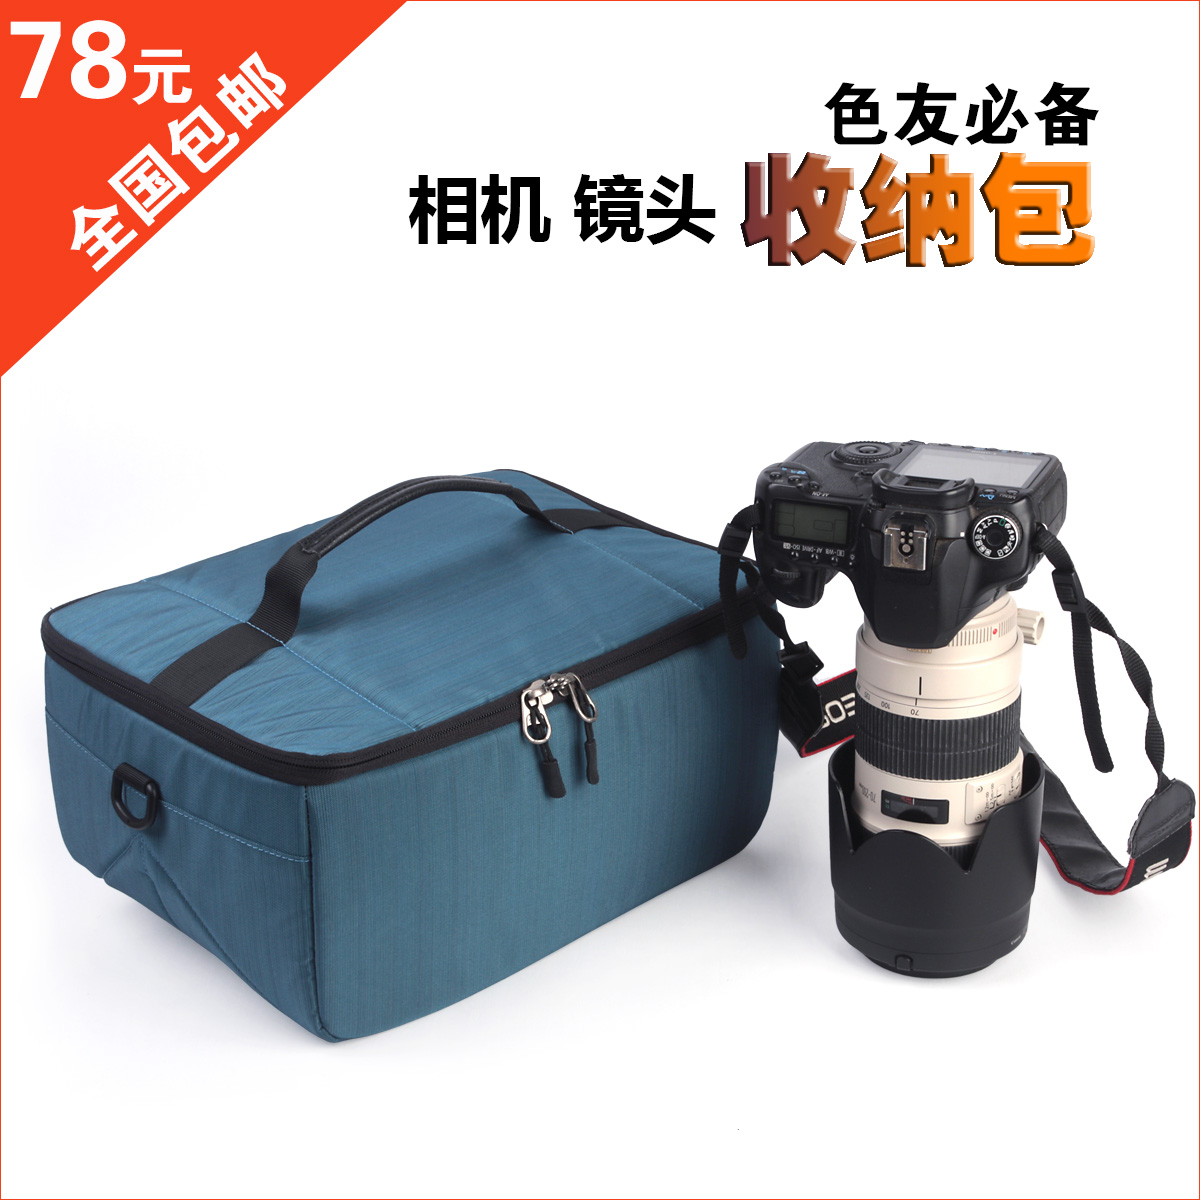 Camel league slr camera bag camera bag liner within the camera lens storage bag versatile package audacious